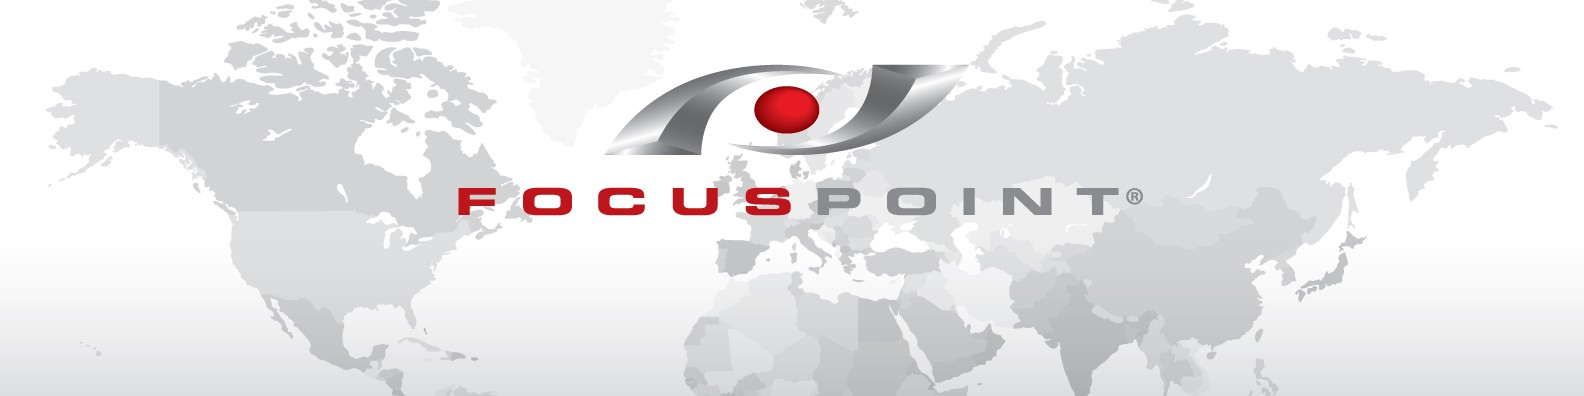 FocusPoint International Inc